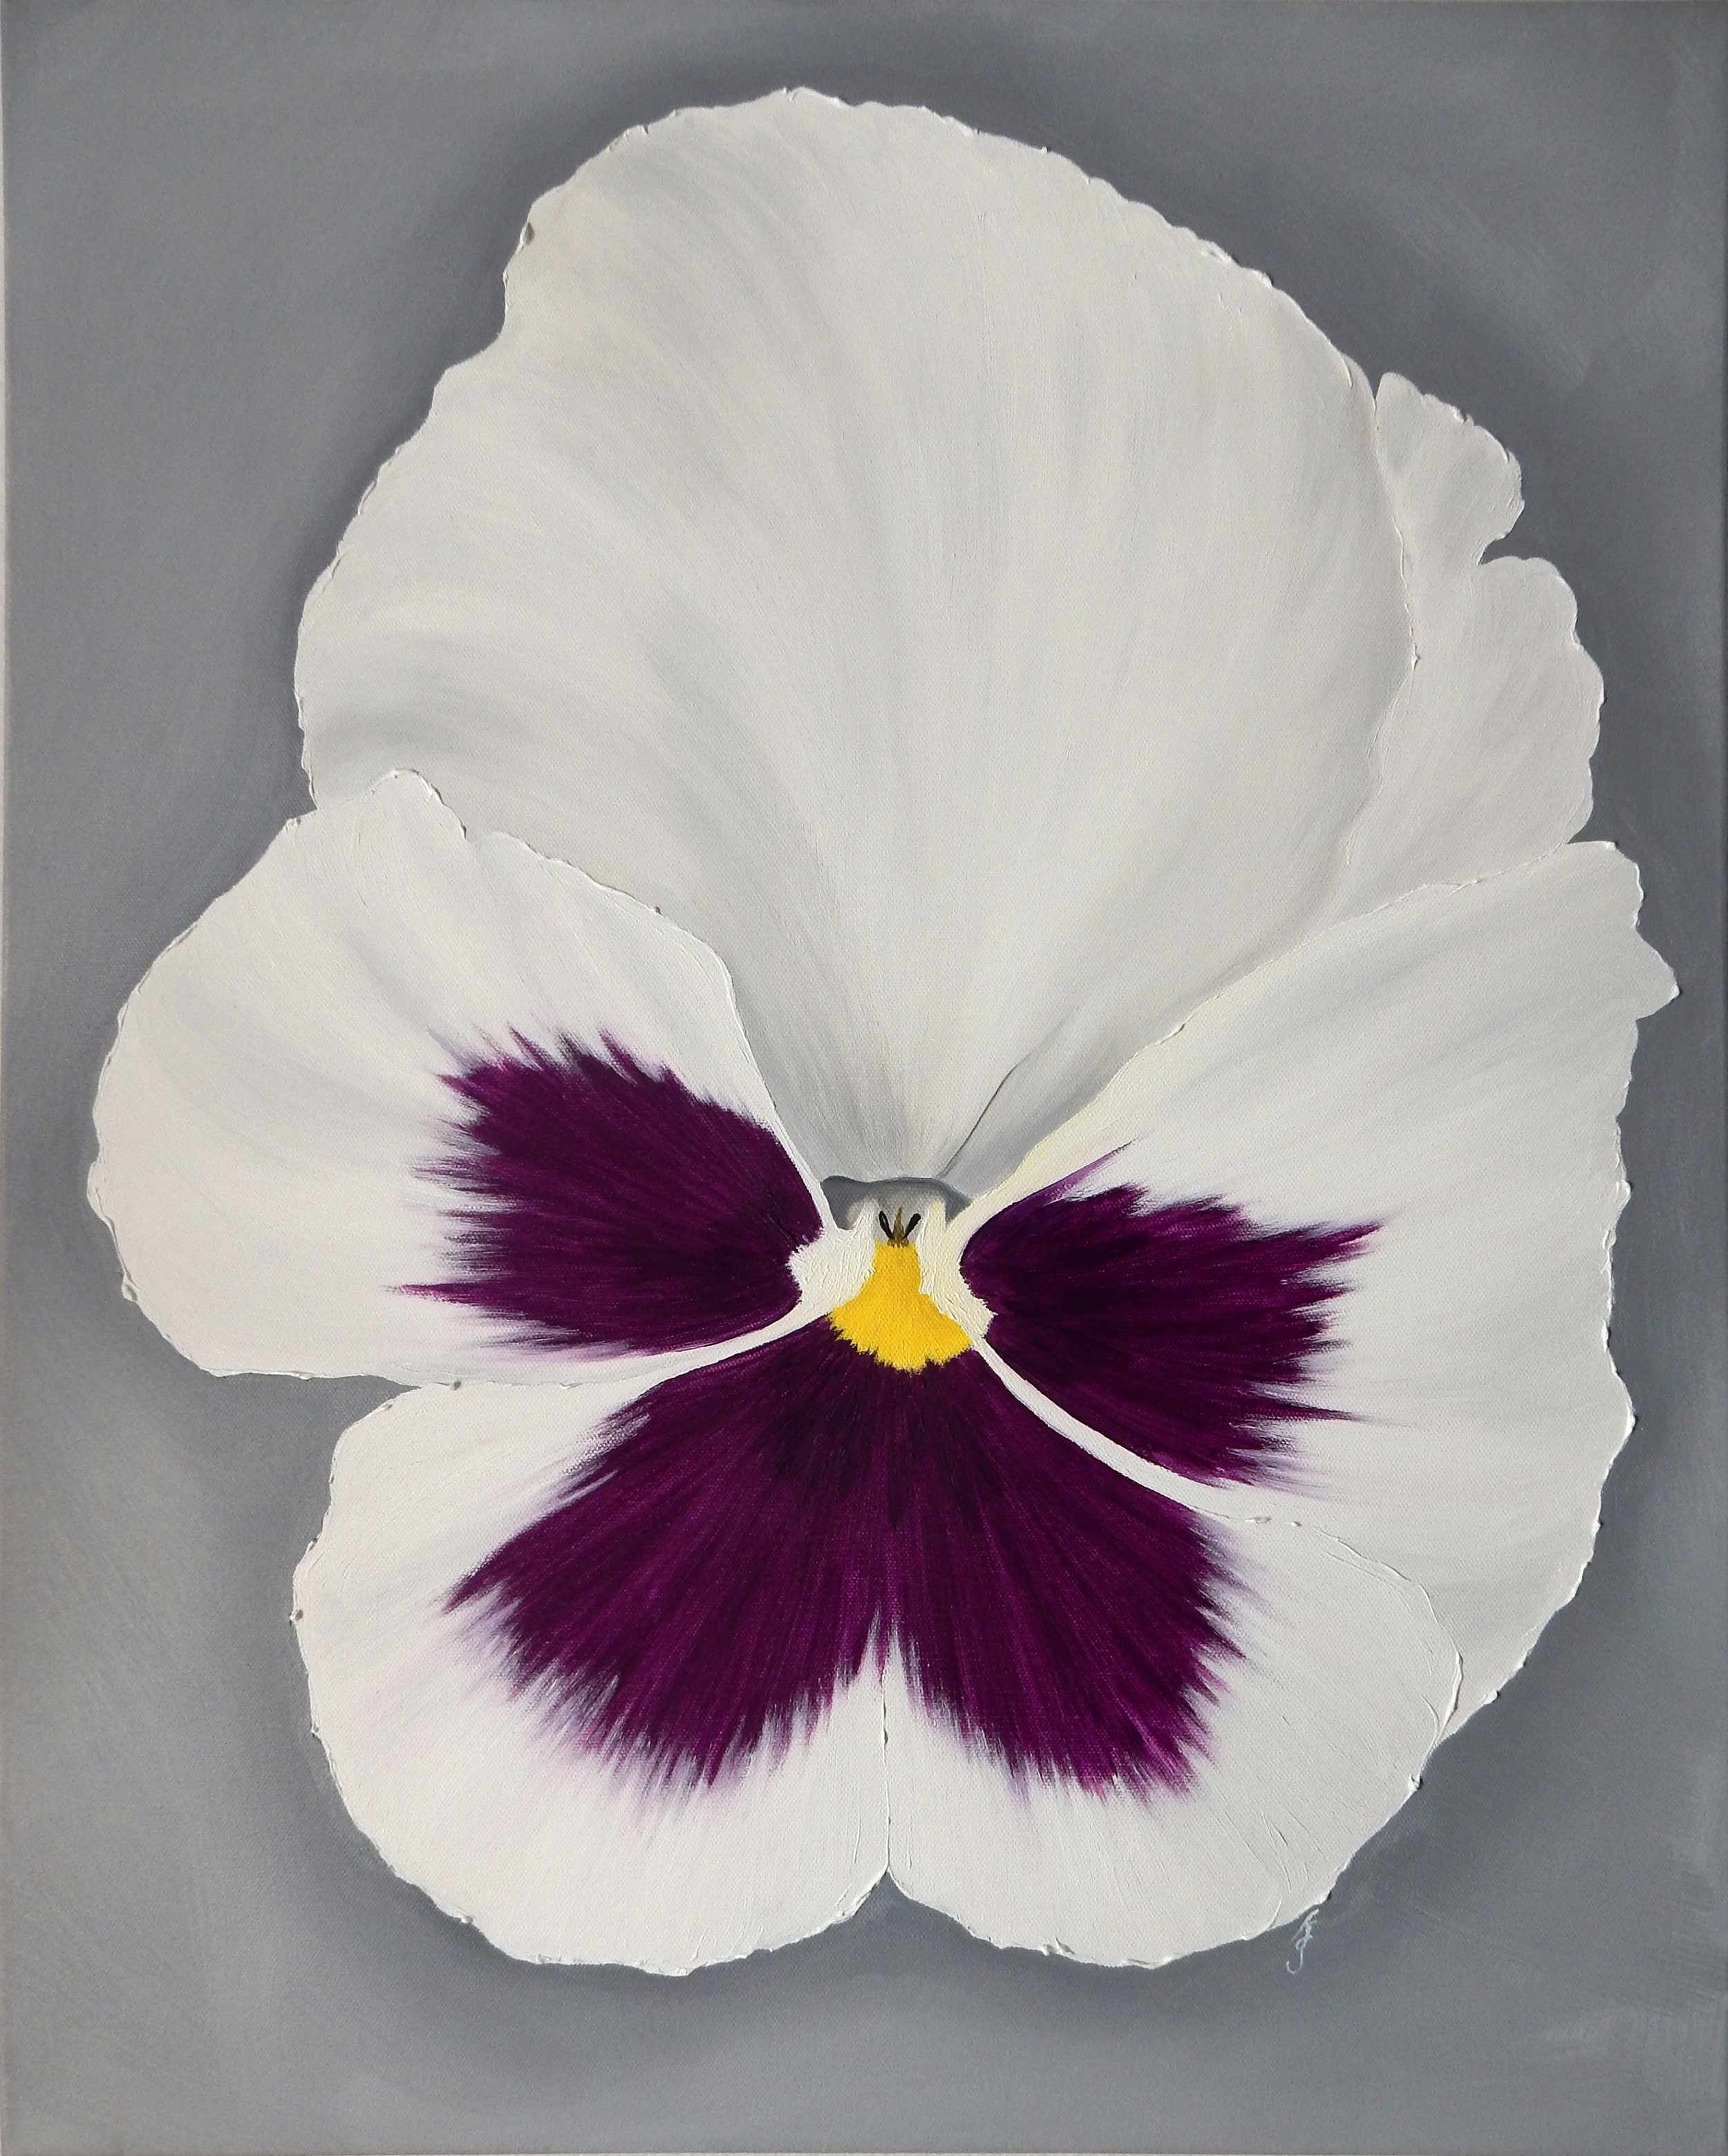 White and Purple Pansy  2017 Oil on canvas 28 x 22 x 1.5 inches